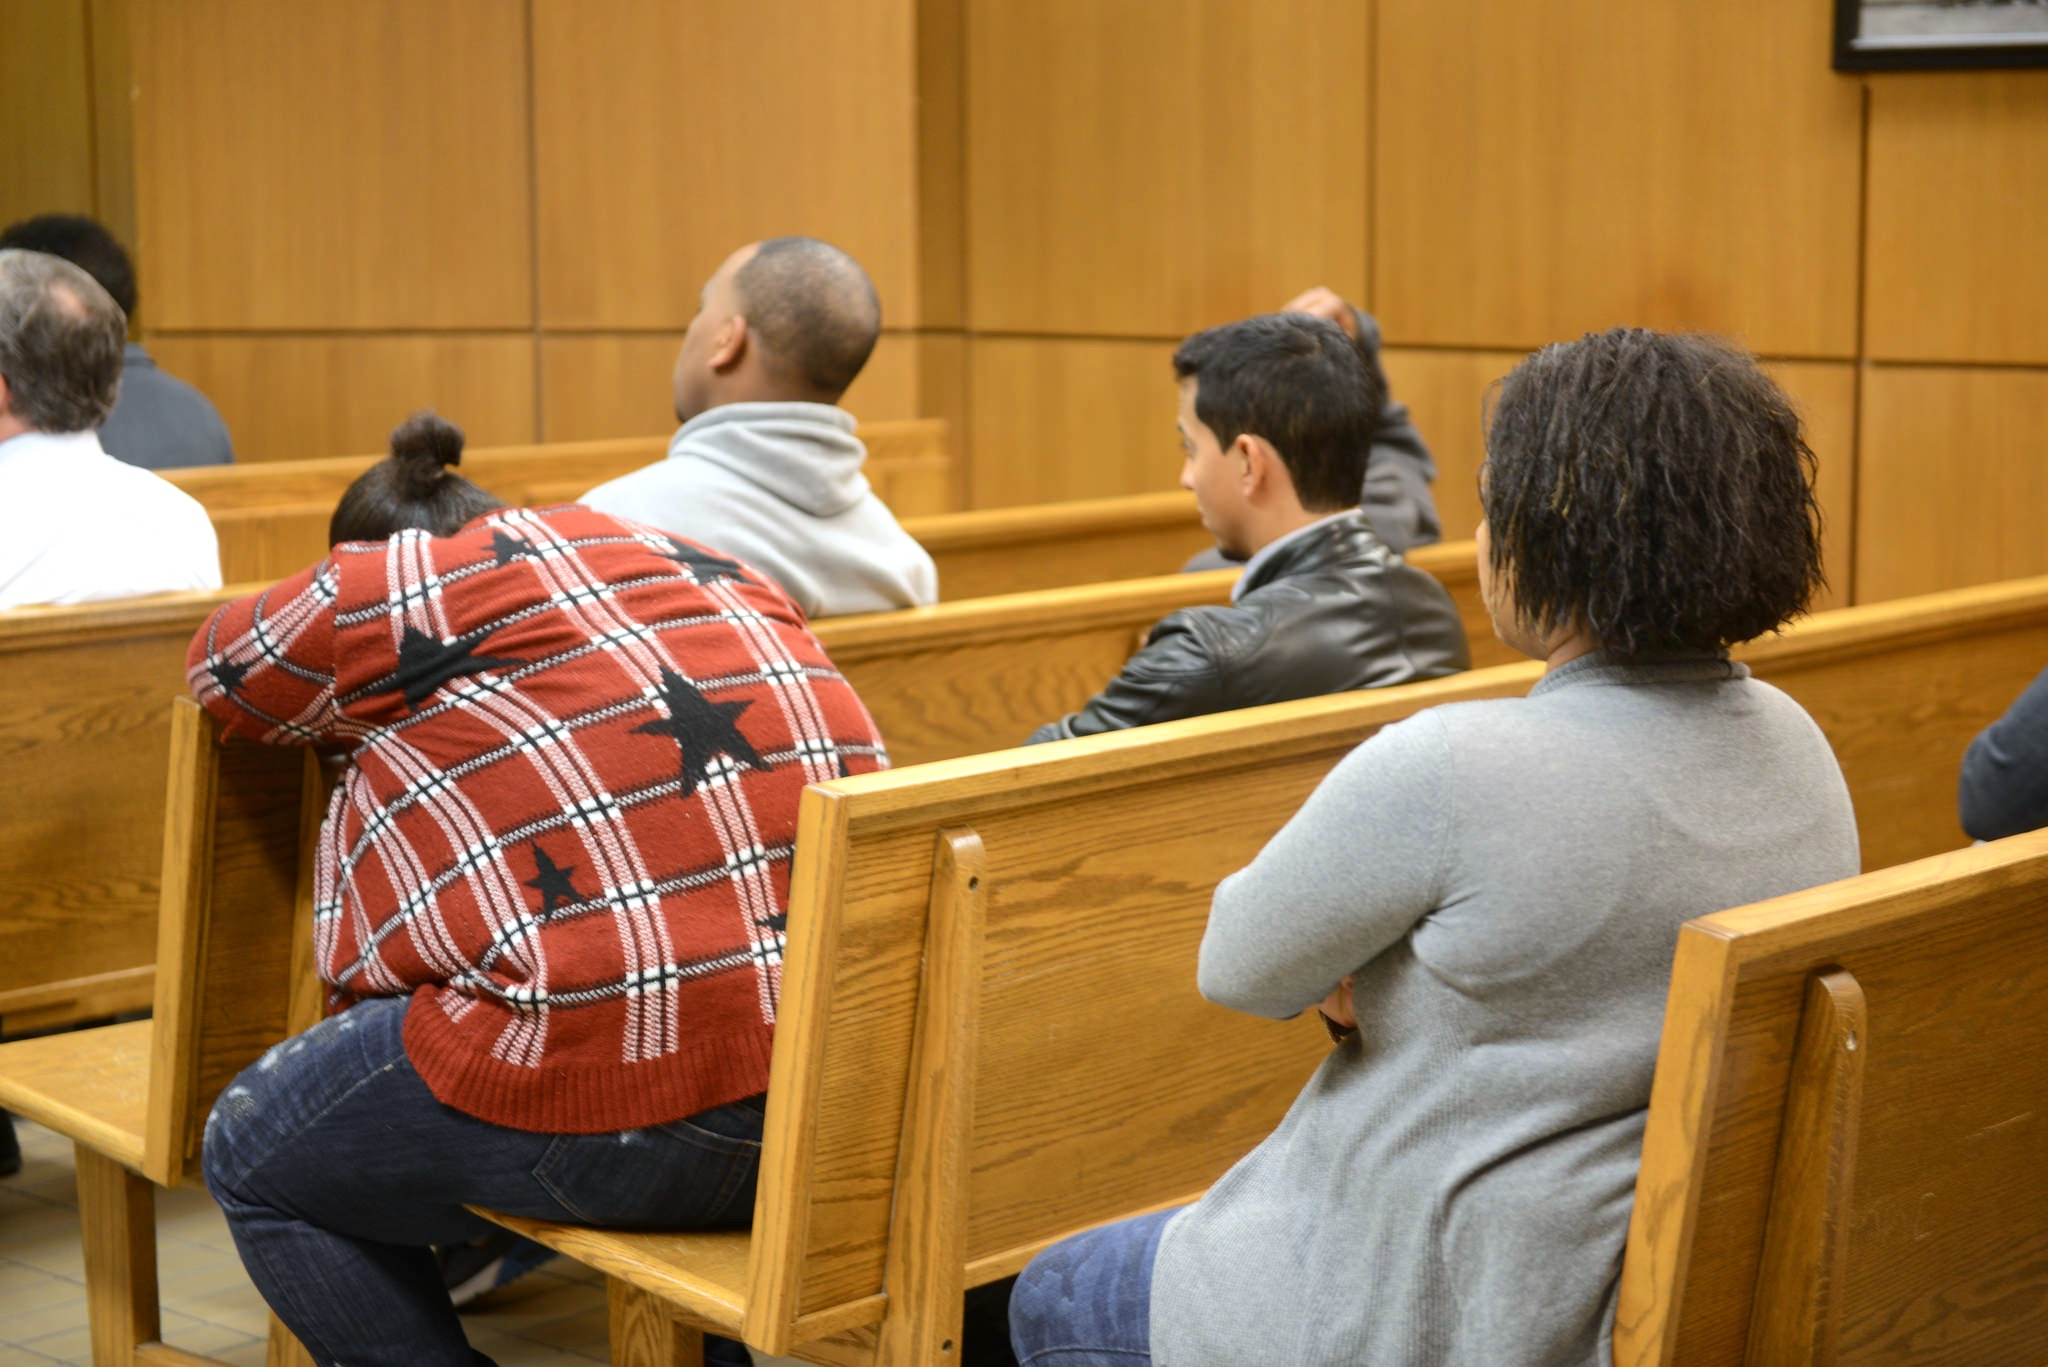 People wait for court proceedings to begin inside a Milwaukee Municipal courtroom. (Photo by Sue Vliet)